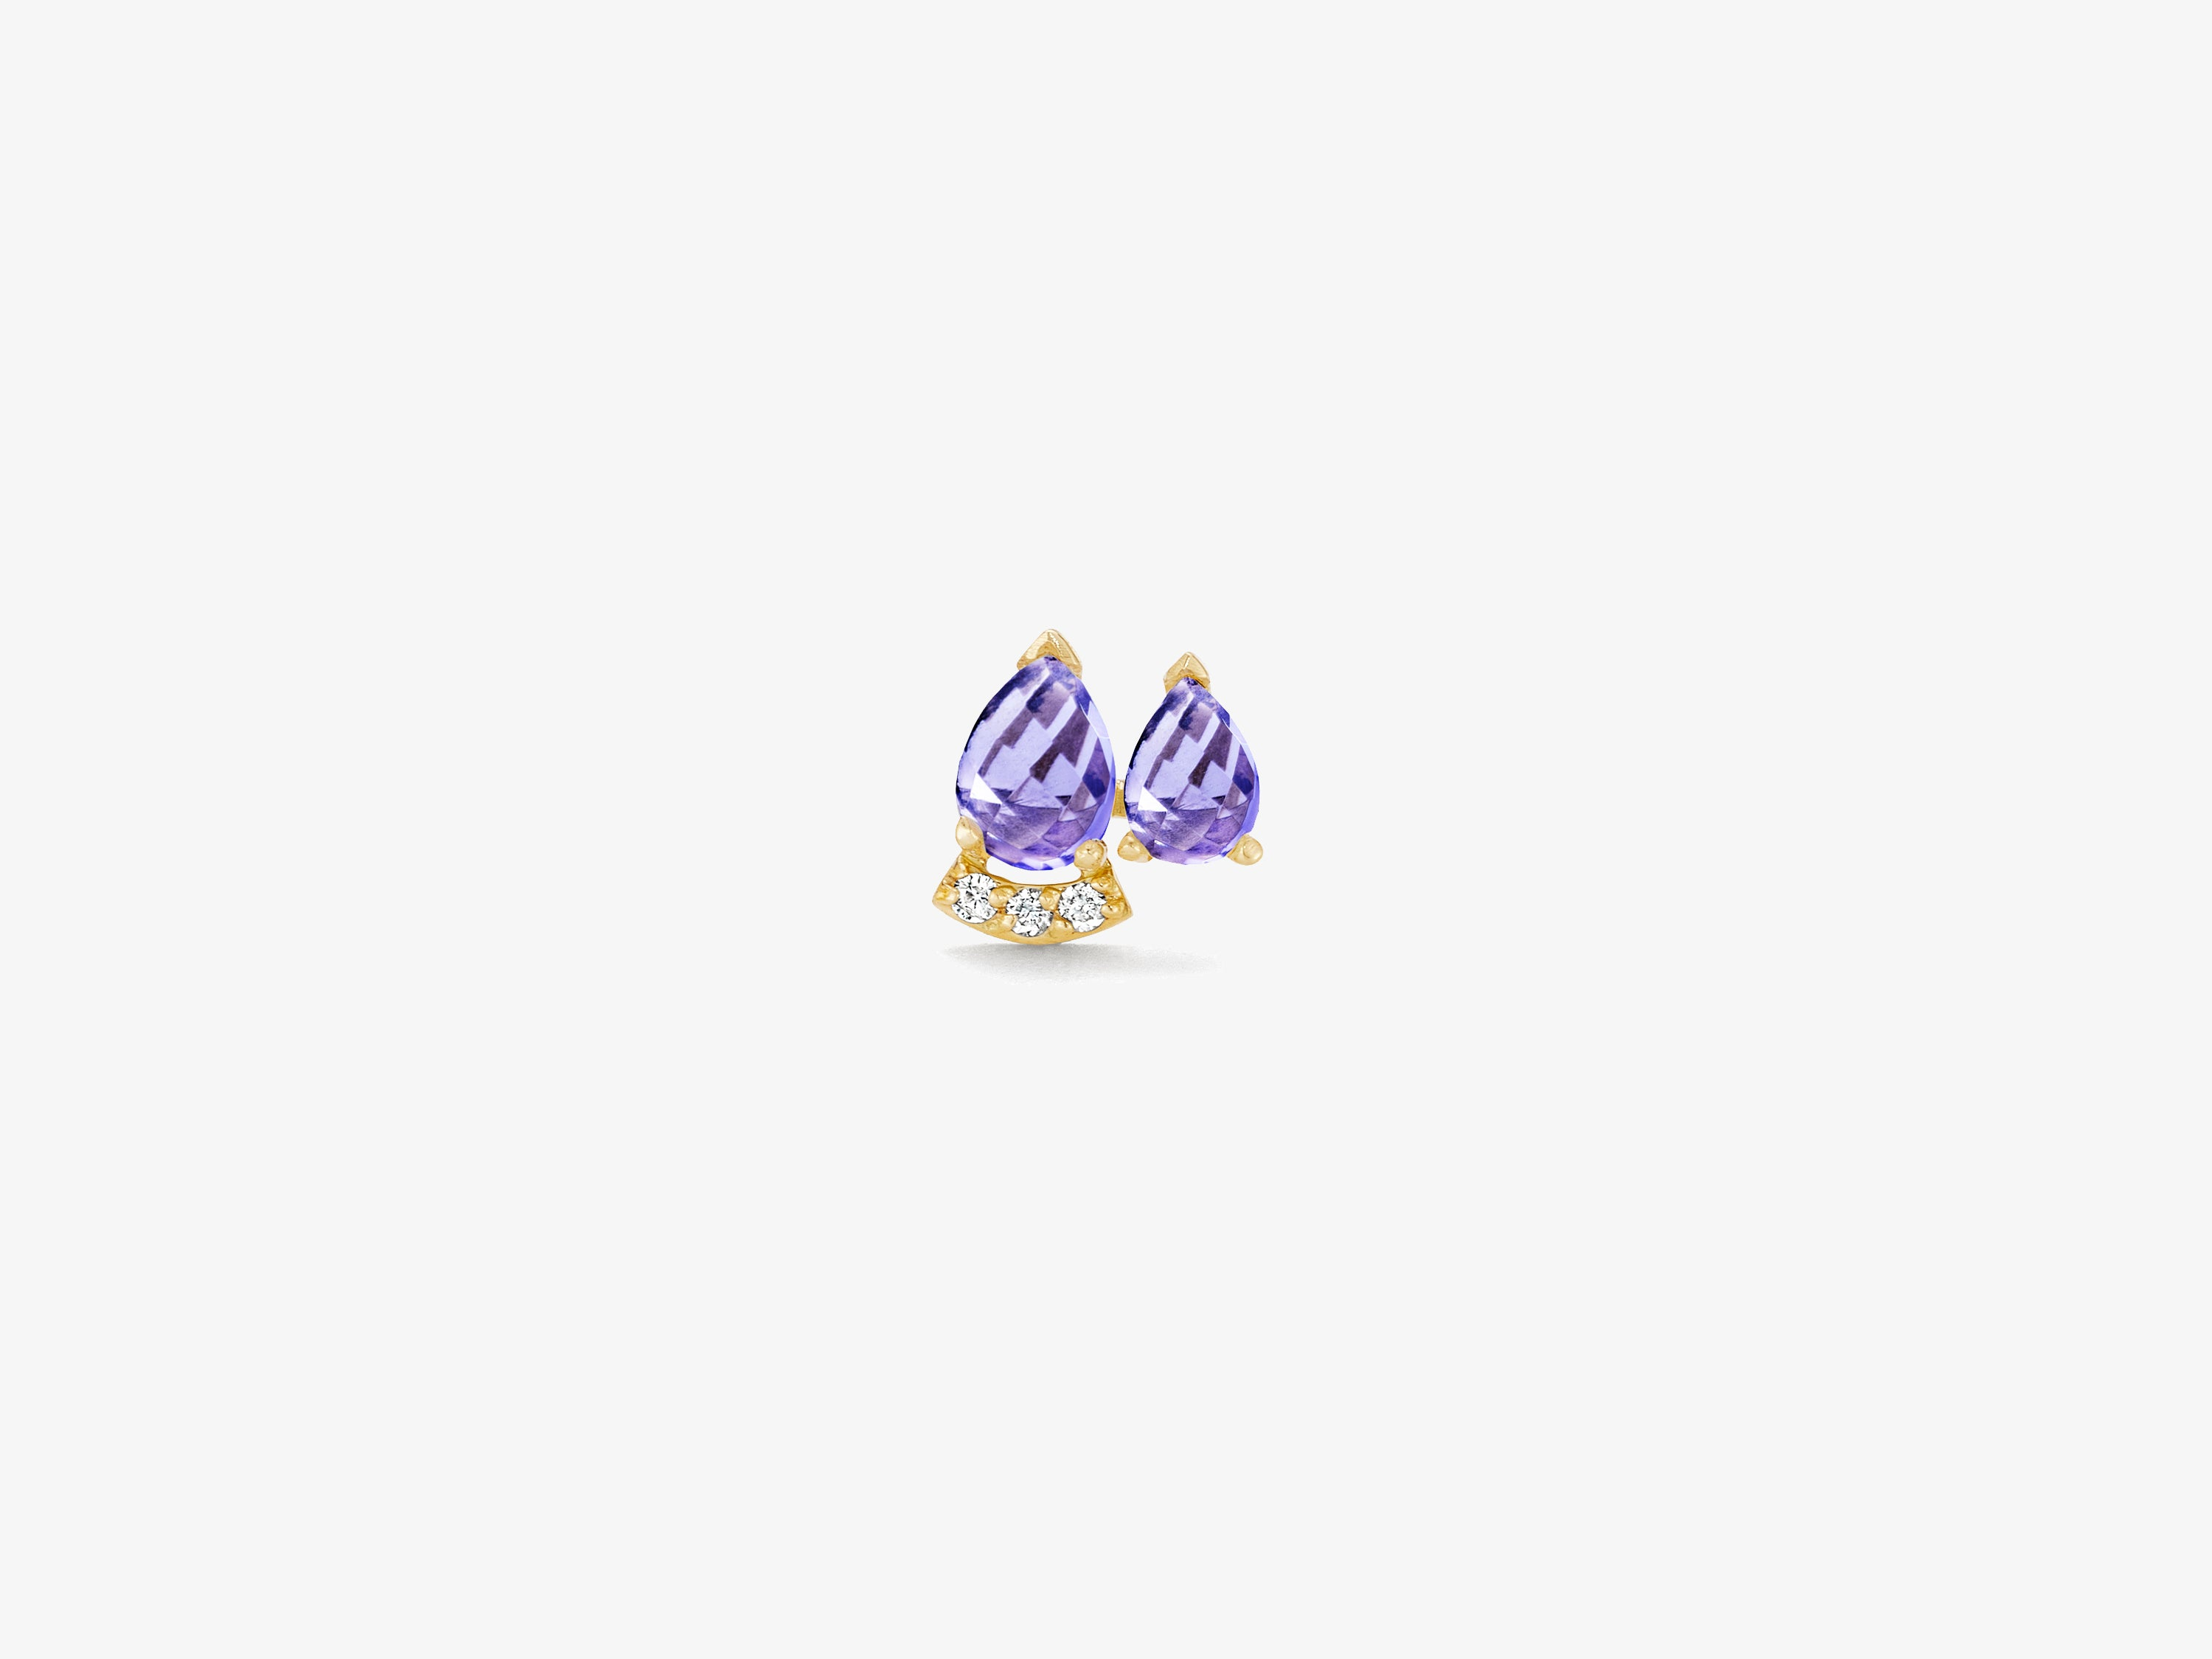 Double Rose Cut Stone Stud with Curved Diamond Pave Bar